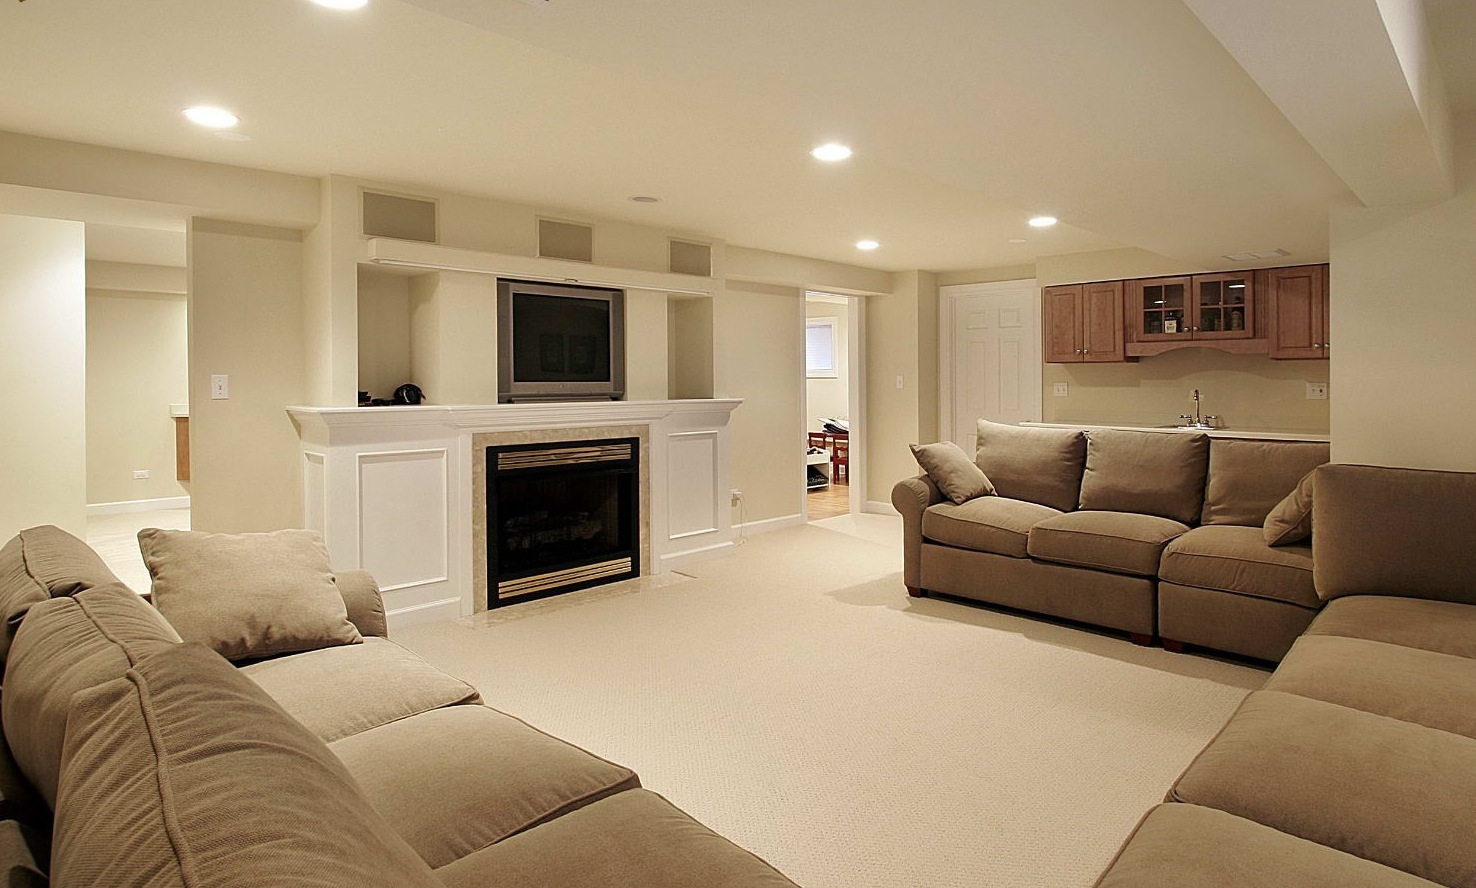 Awesome Finished Basements 30 Basement Remodeling Ideas & Inspiration